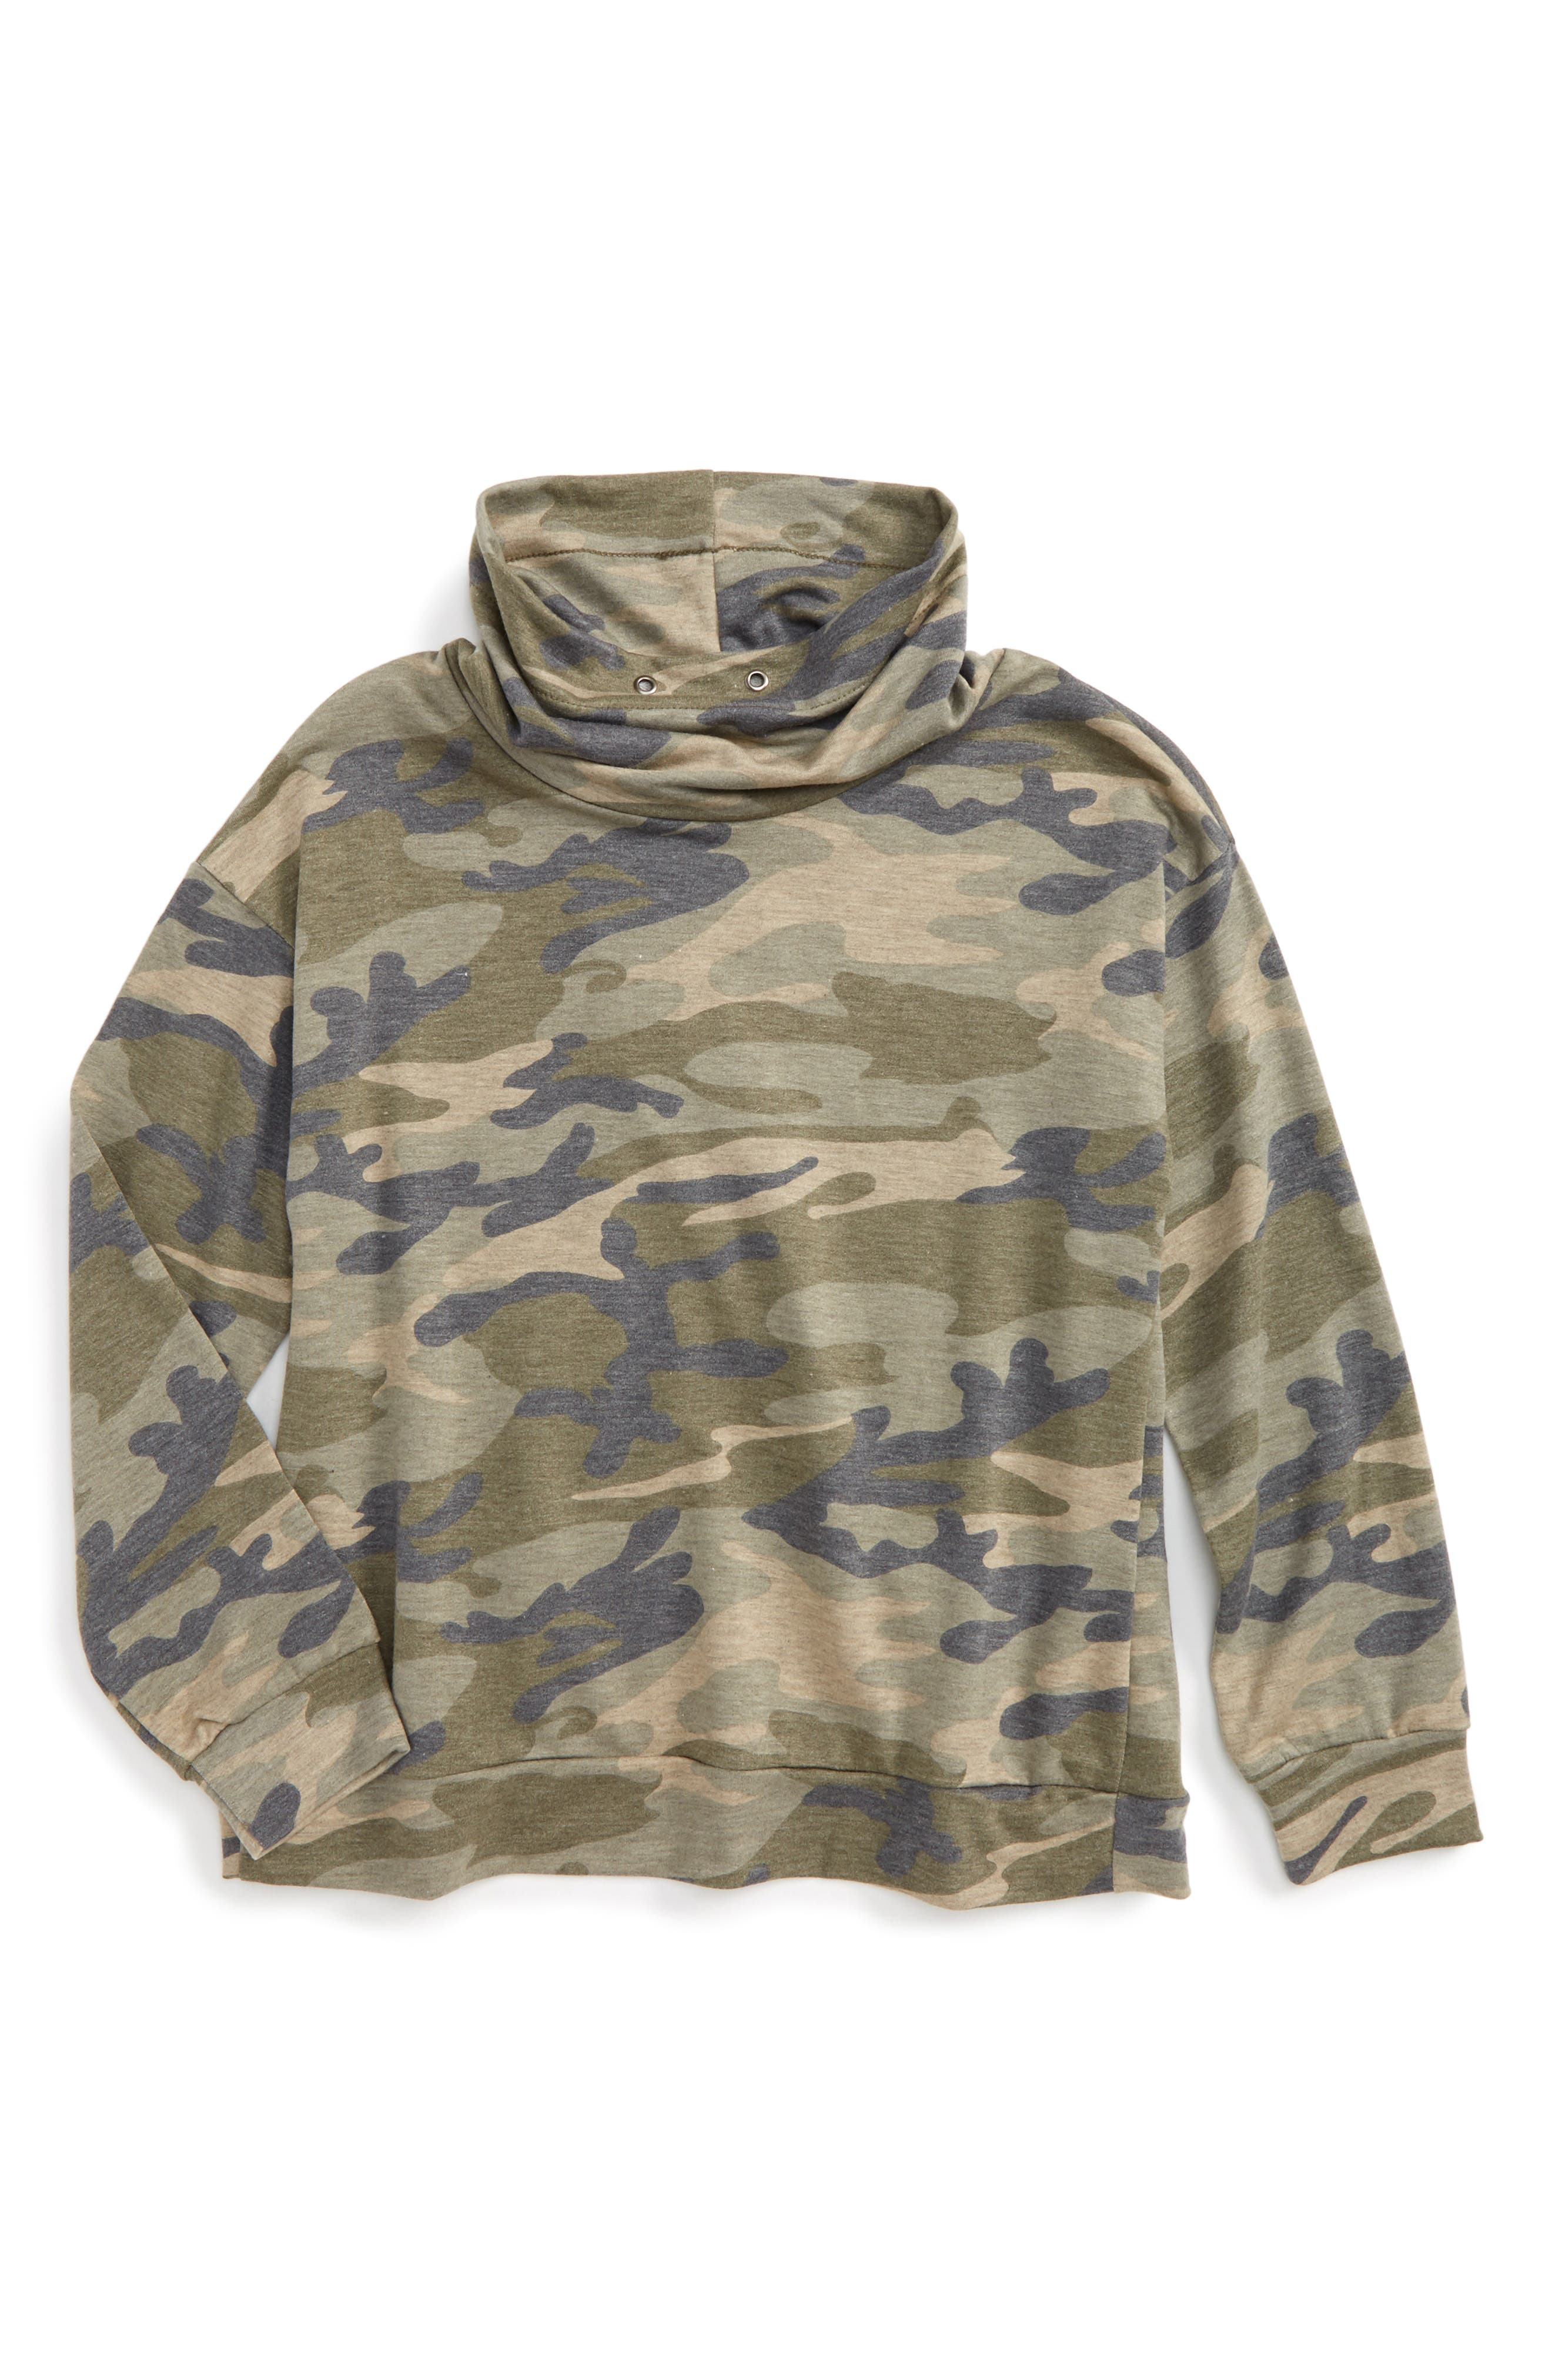 Camo Print Cowl Neck Sweatshirt,                             Main thumbnail 1, color,                             073 Military